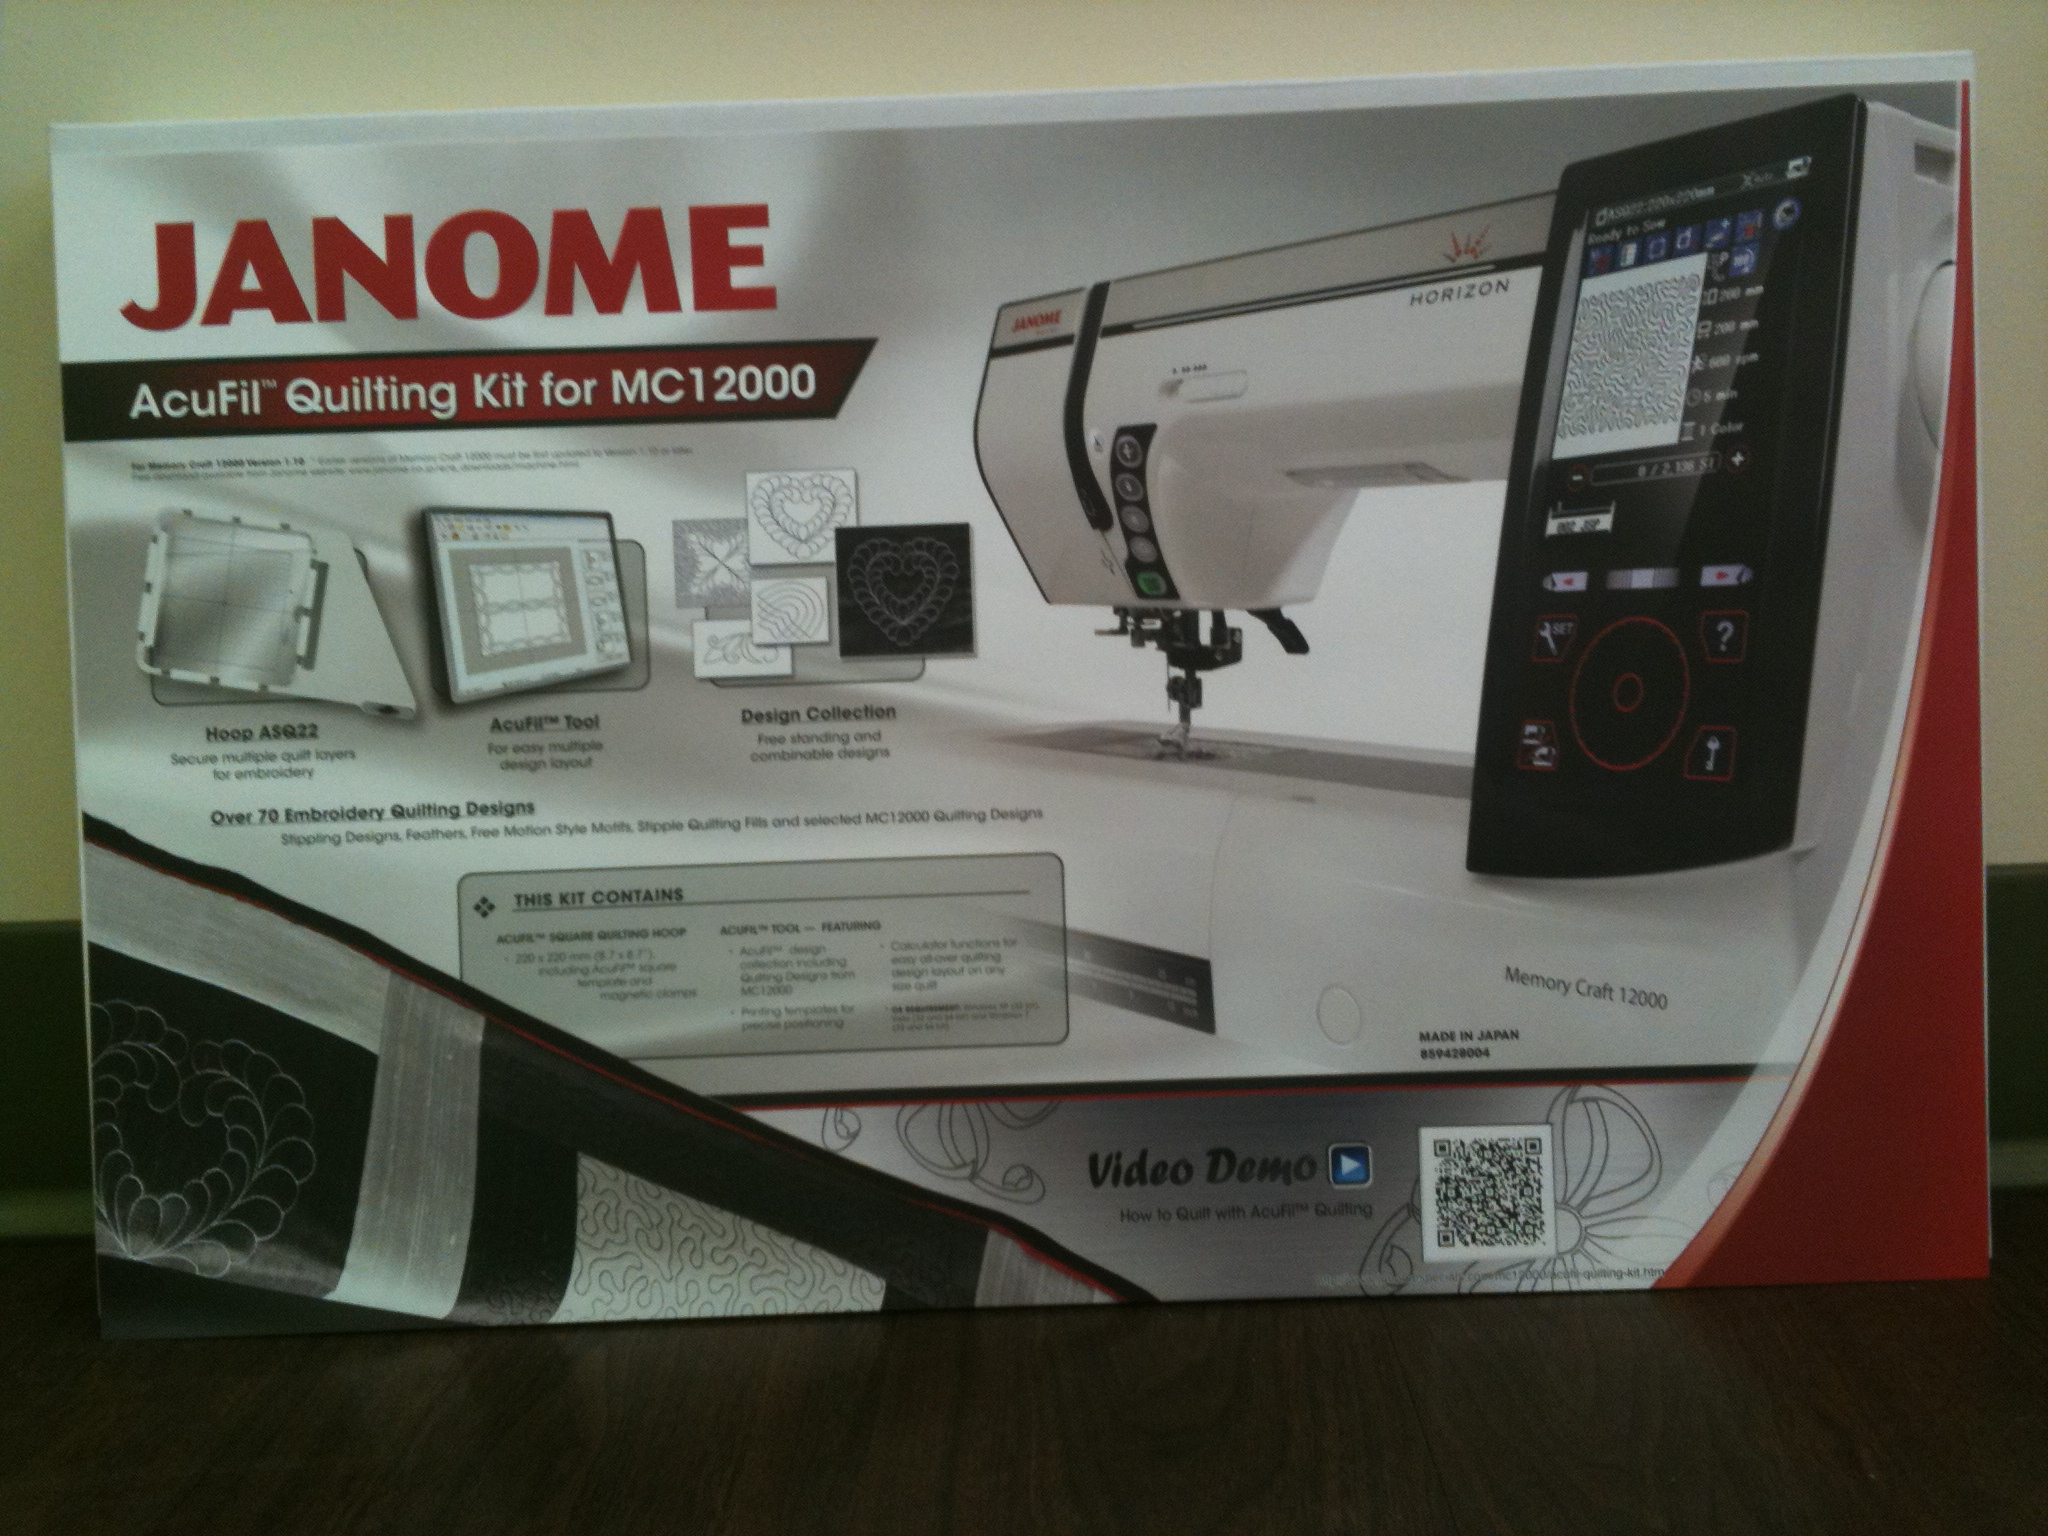 Janome memory craft 12000 - This Is The Acufil Quilting Kit For The Janome Mc 12000